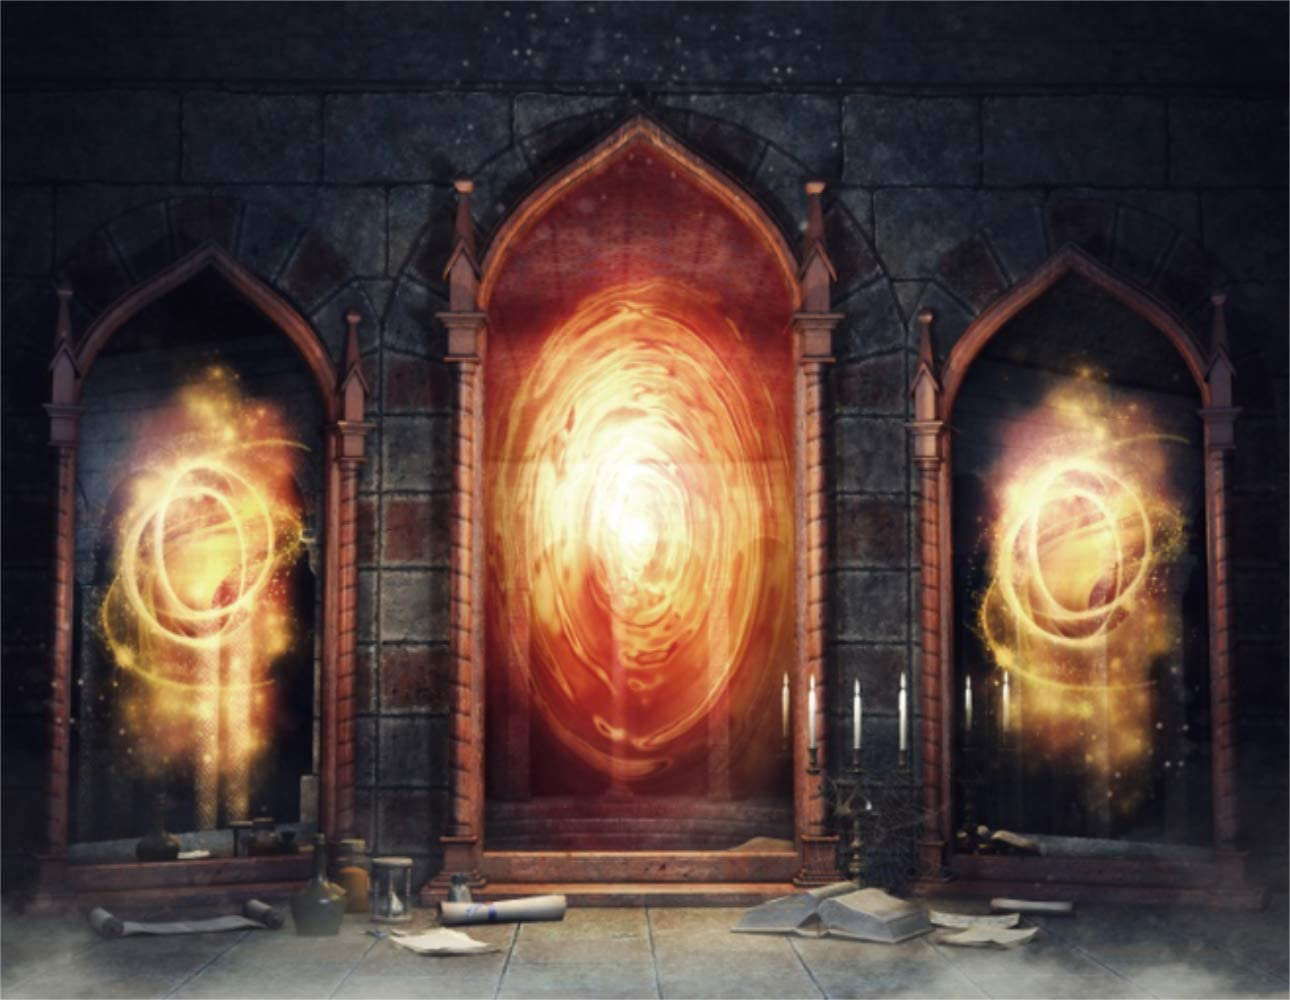 Laeacco Backdrop 12x9ft Vinyl Photography Background Dark Chamber with Magic Mirrors Books and Scrolls Backdrop Candle Spooky Night Castle Arch Door Flame Backdrop Photo Portrait Shoot Video Prop